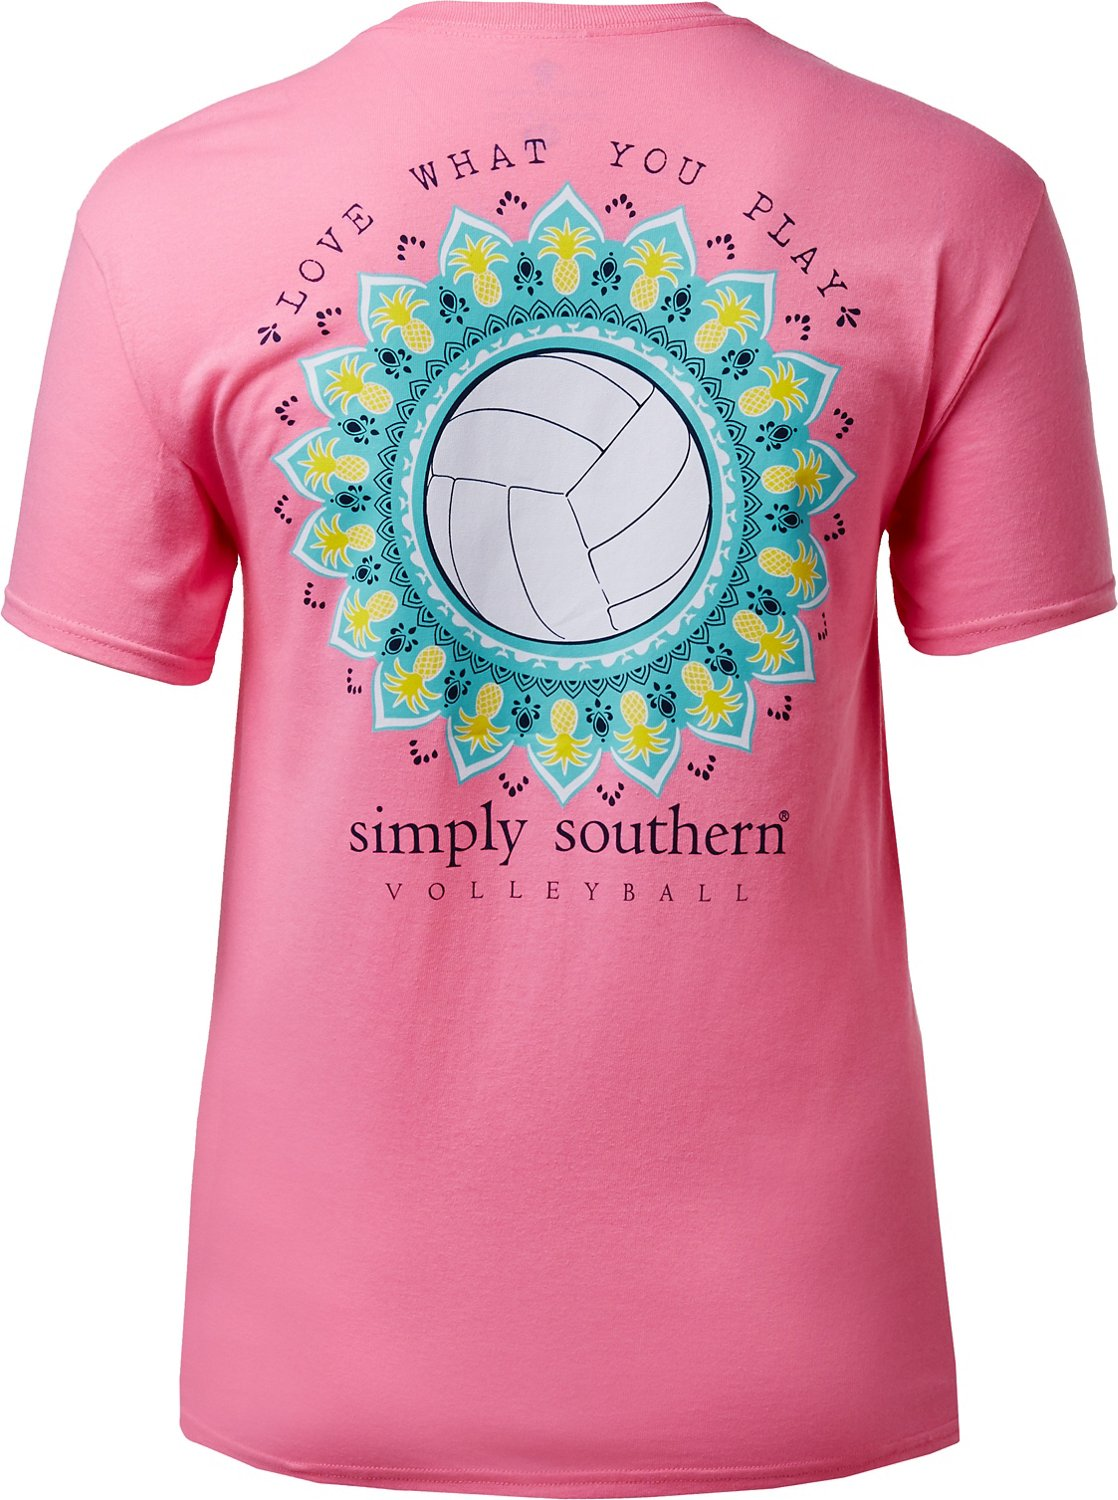 Simply Southern Women's Volleyball T-shirt - view number 2